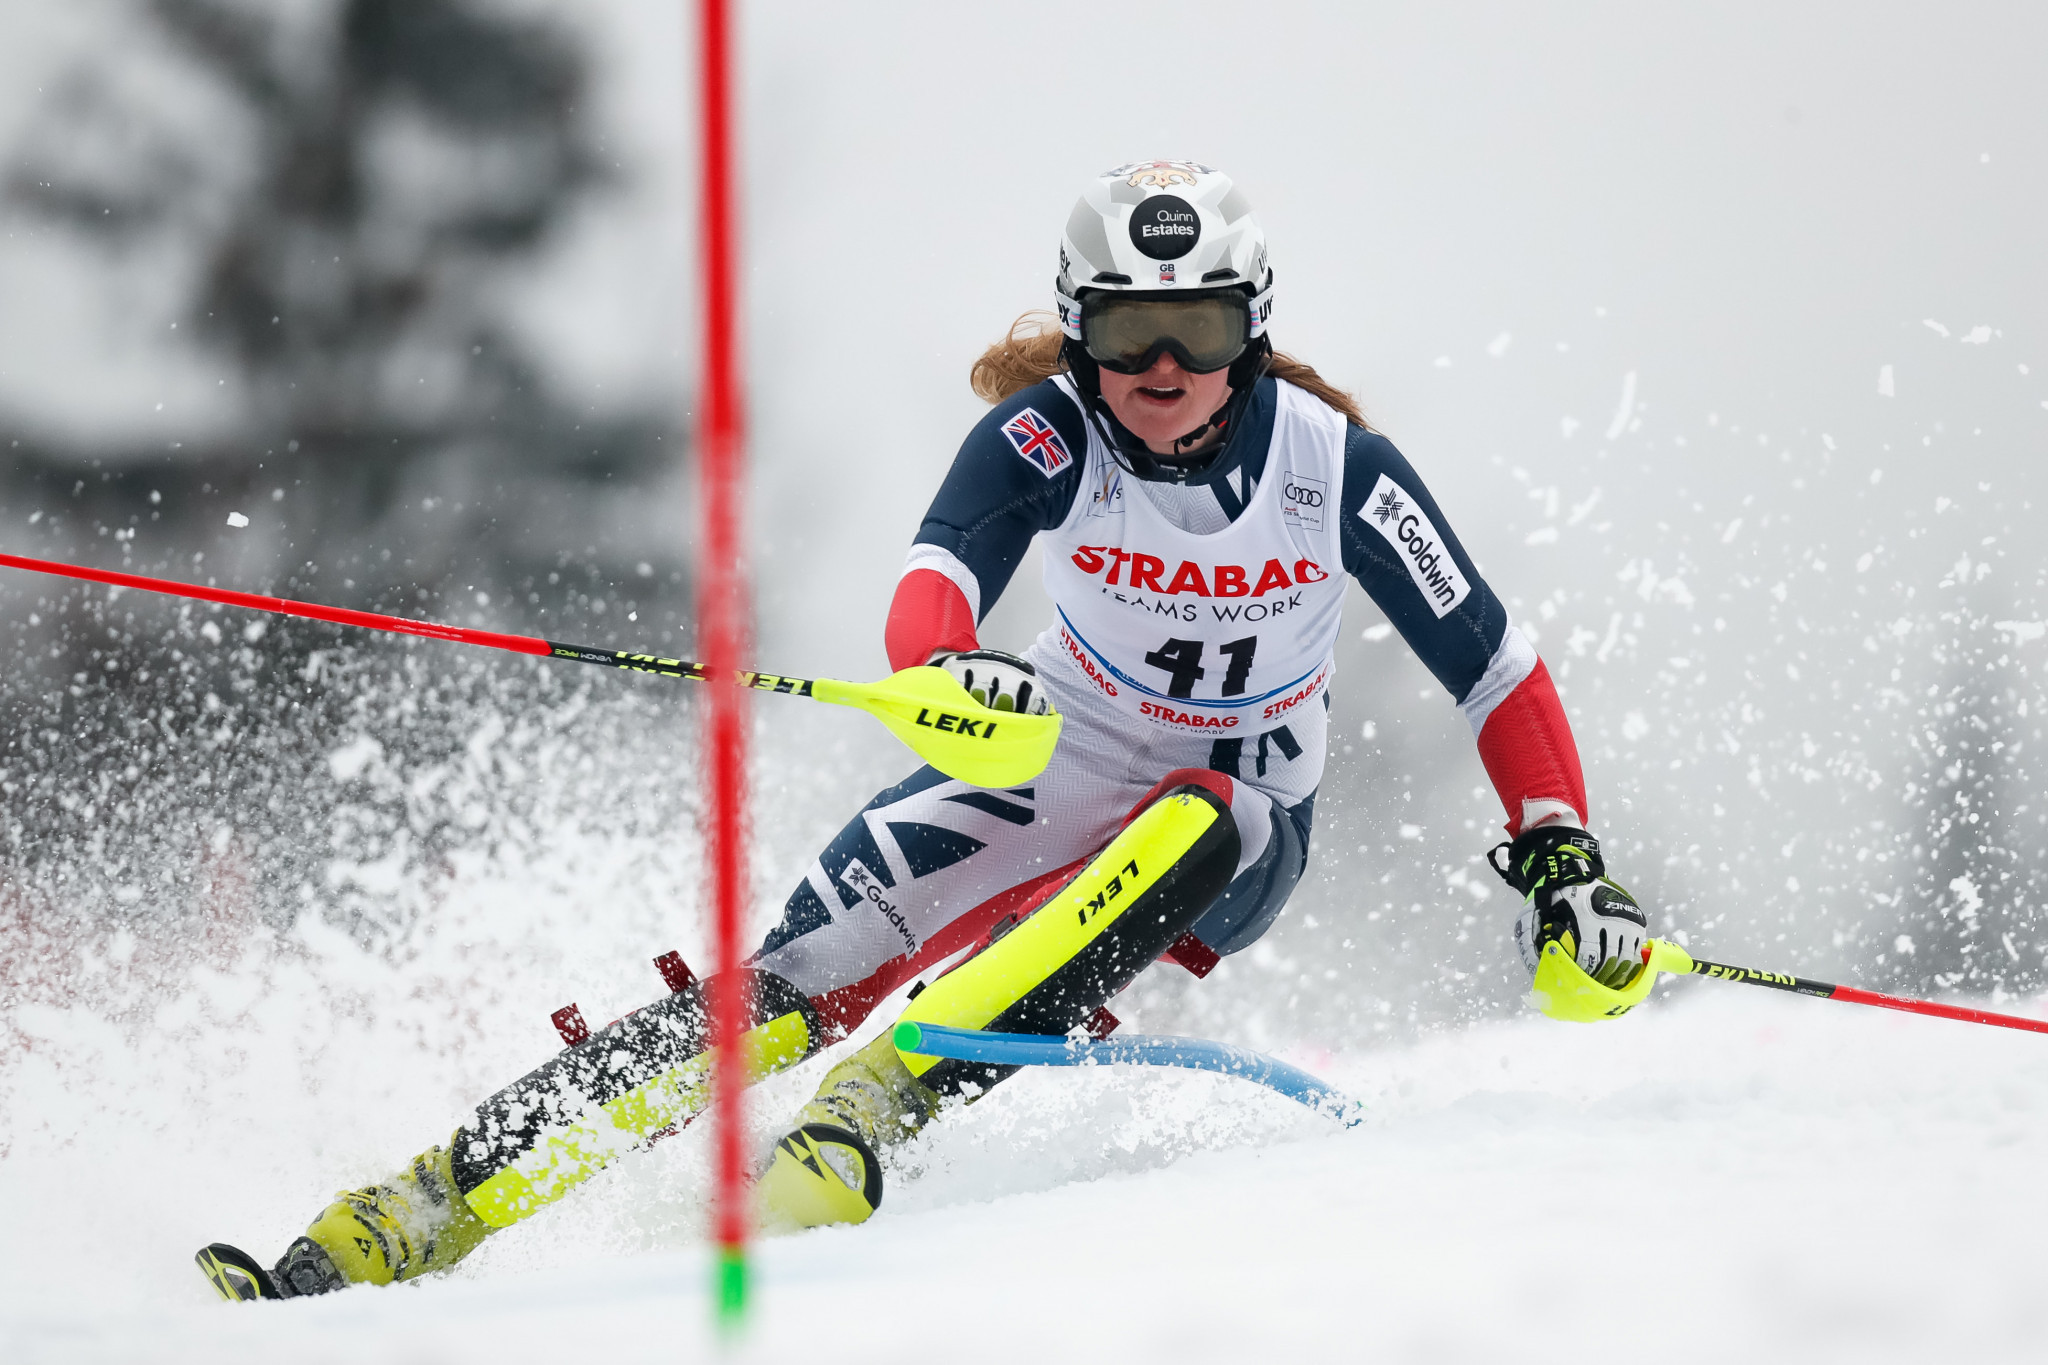 Charlie Guest, Britain's first female Alpine skier to win a Europa Cup race, will compete for her country in next season's FIS Alpine Ski World Cup ©Getty Images